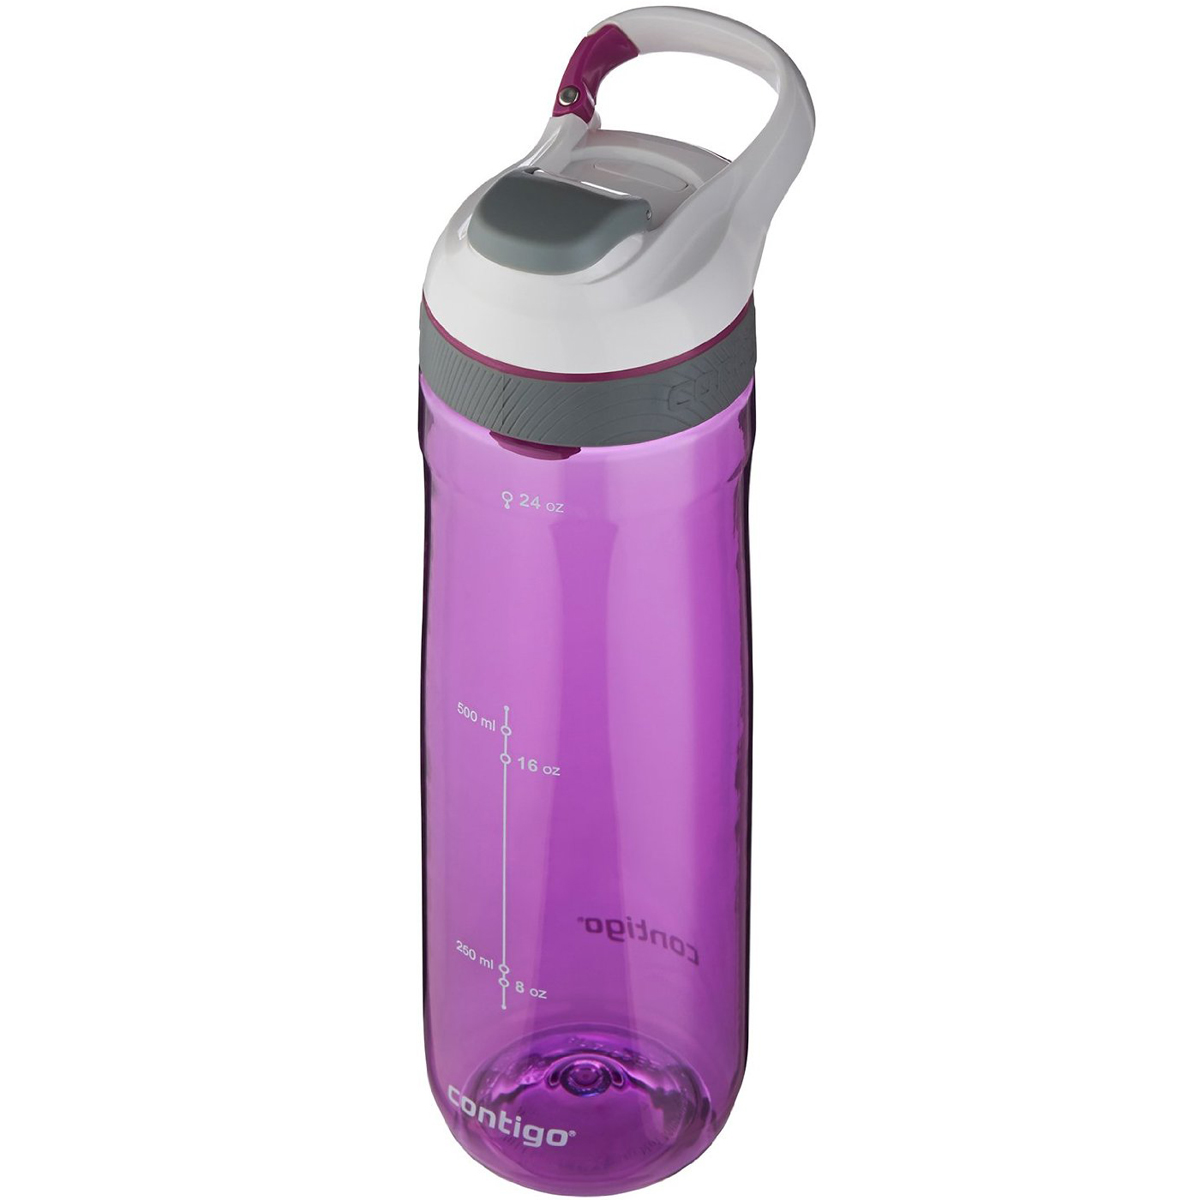 Contigo-24-oz-Cortland-Autoseal-Water-Bottle miniature 10